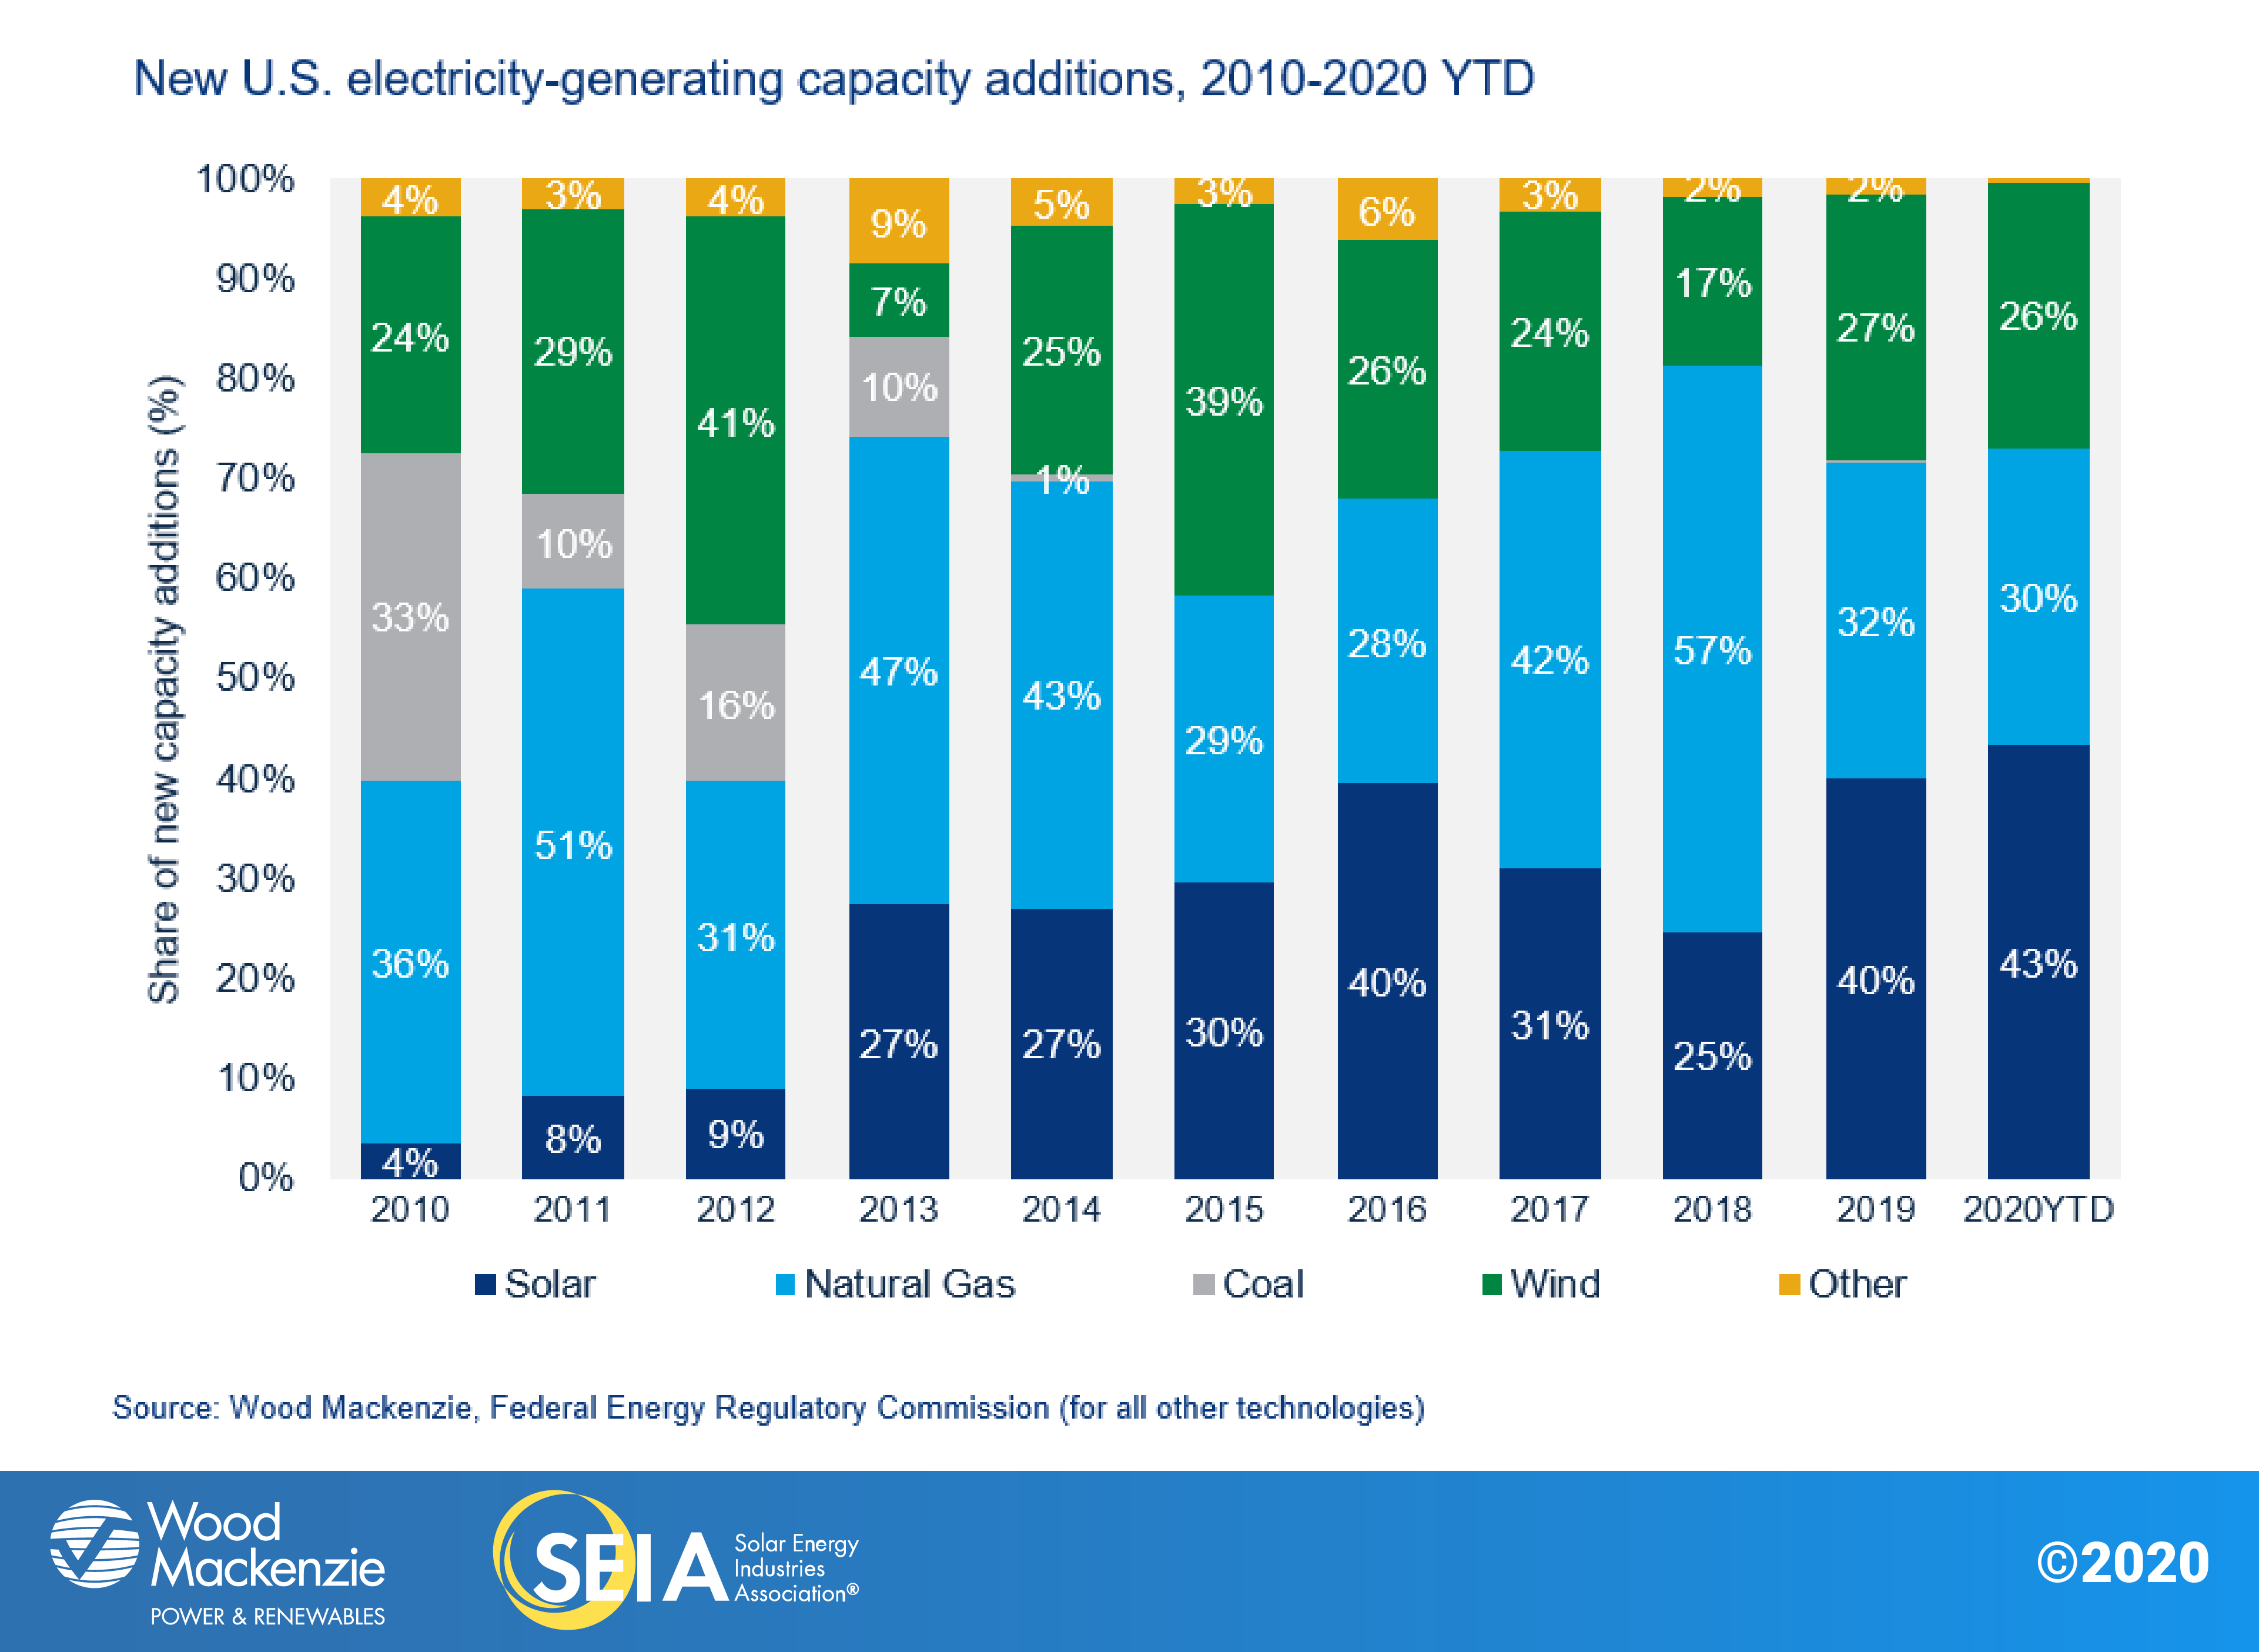 New U.S. electricity generating capacity - opportunities for solar energy manufacturers